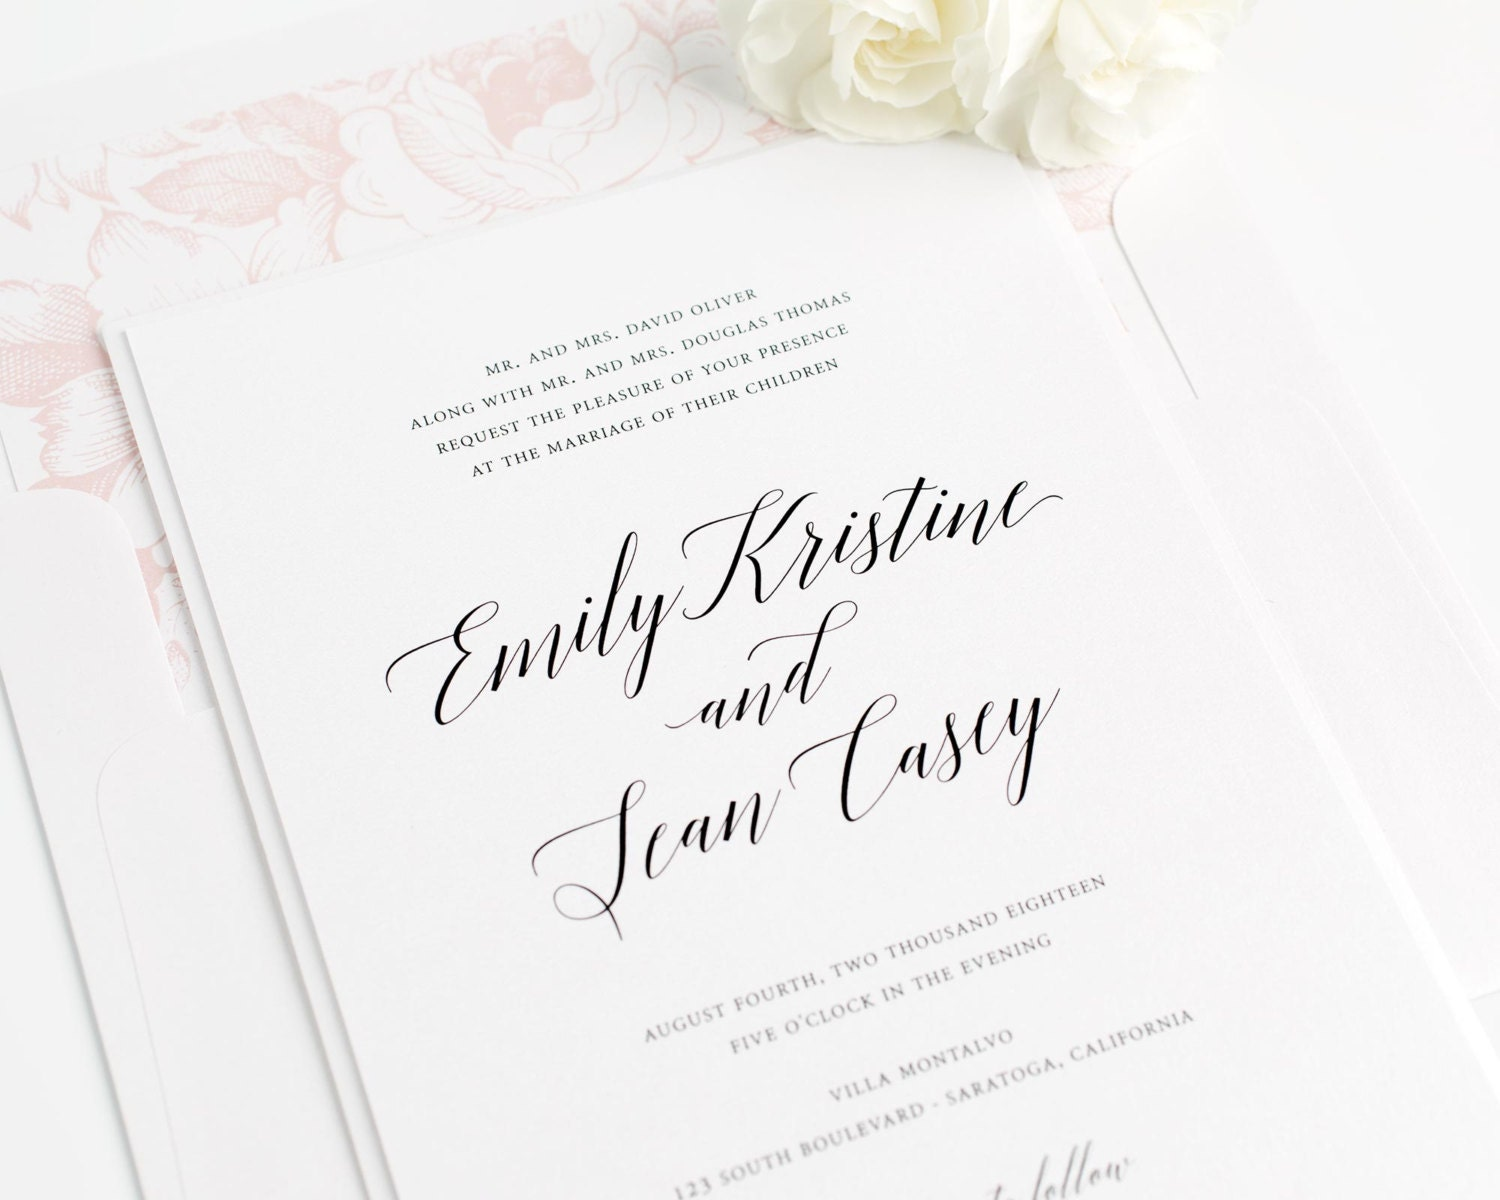 French Typography With Beautiful furthermore Addition Of Love Modern Wedding in addition Free Printable Wedding Game together with A Suit Of Cards further Sakura Cherry Blossom Love Birds Bridal. on cardstock for wedding invitations